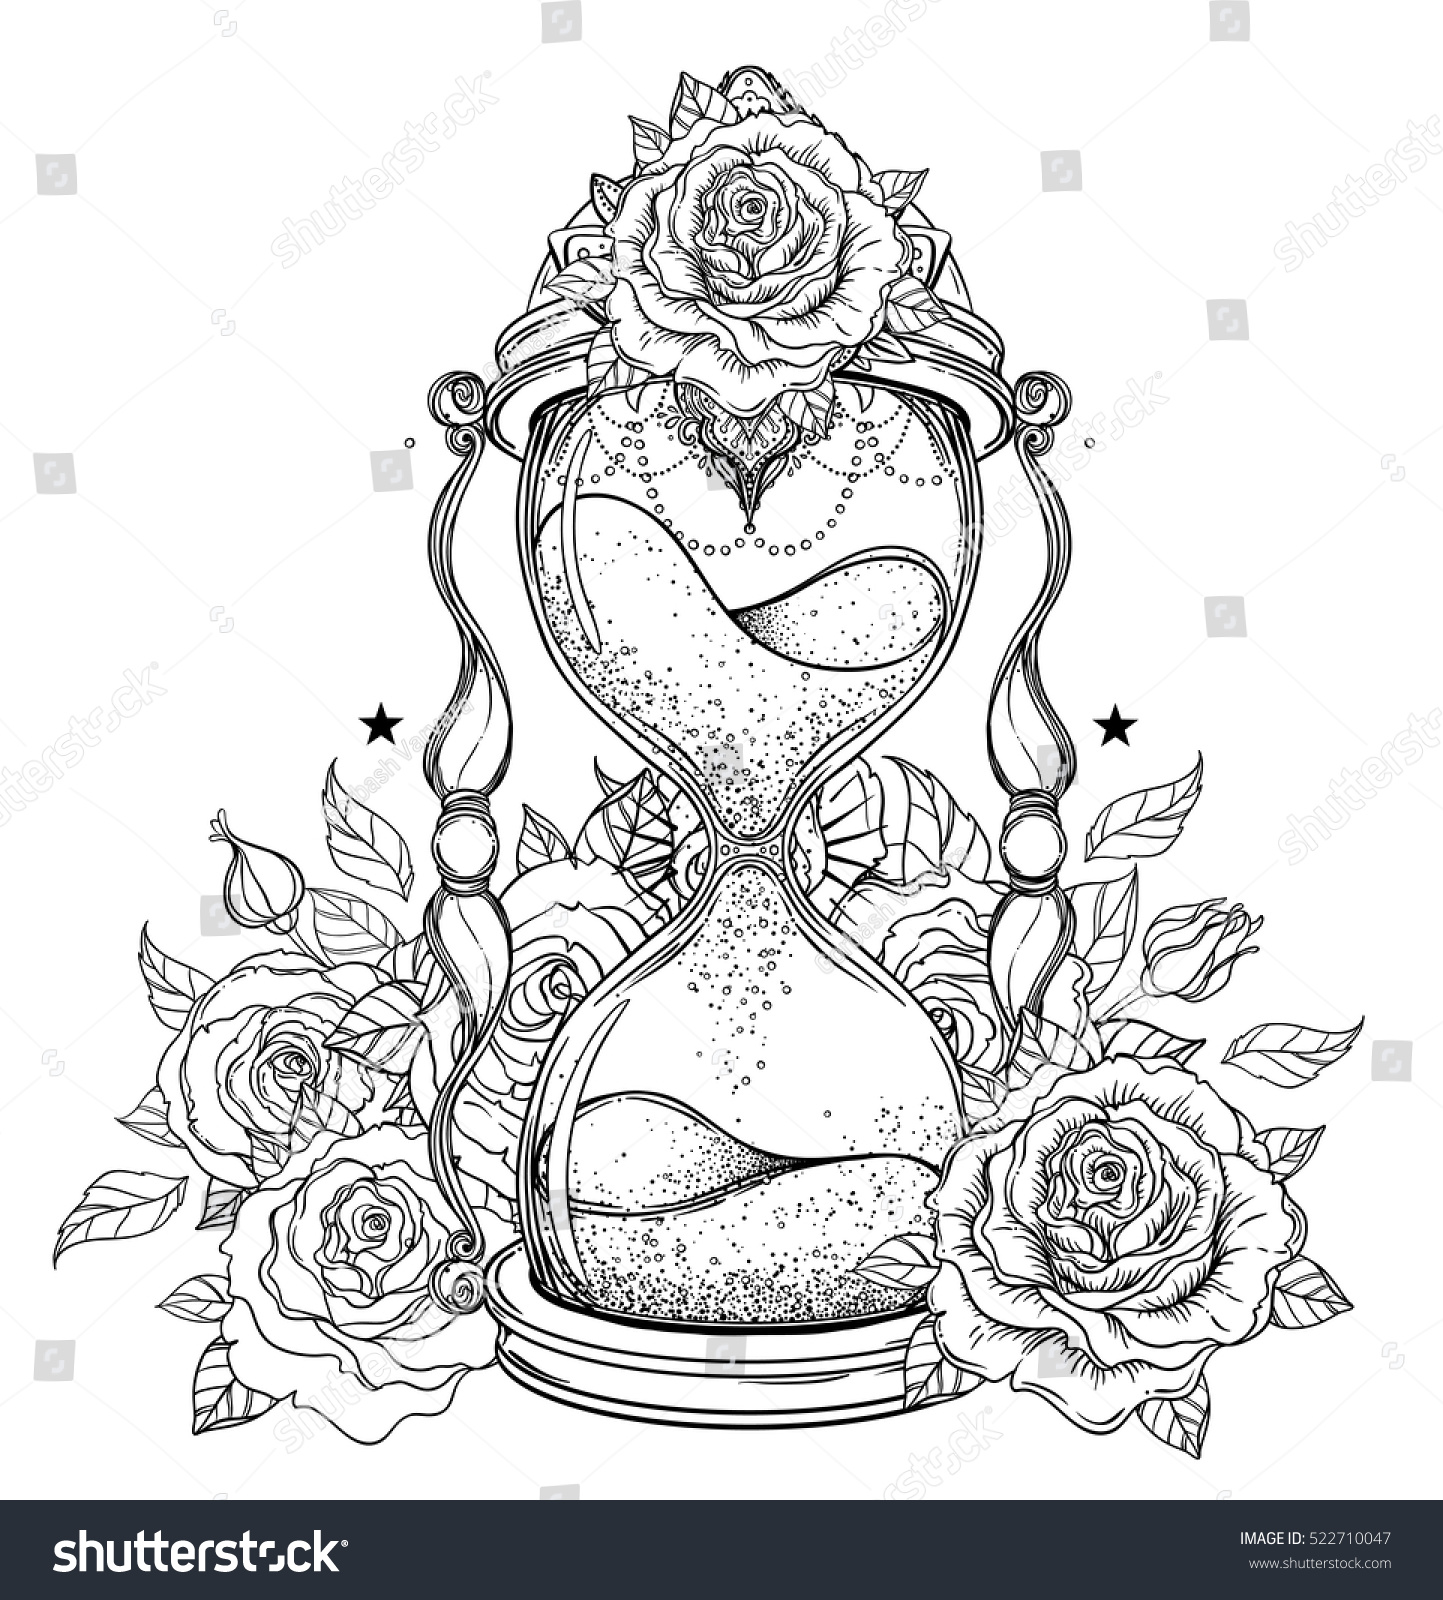 Decorative Antique Hourglass With Roses Illustration Isolated On White Hand Drawn Vector Art